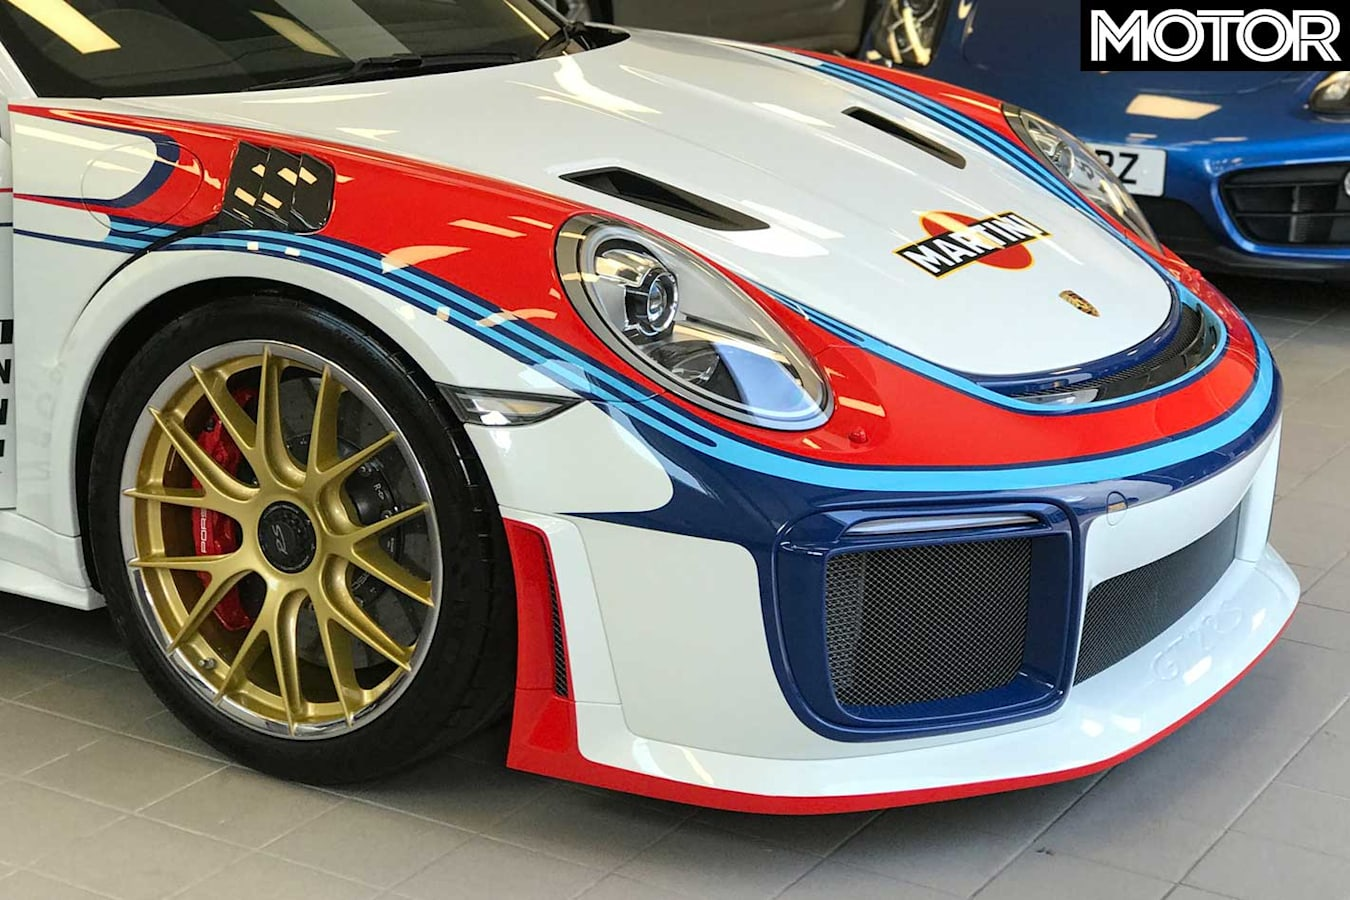 Porsche 911 Gt 2 Rs Moby Dick Livery Front Wheels Jpg